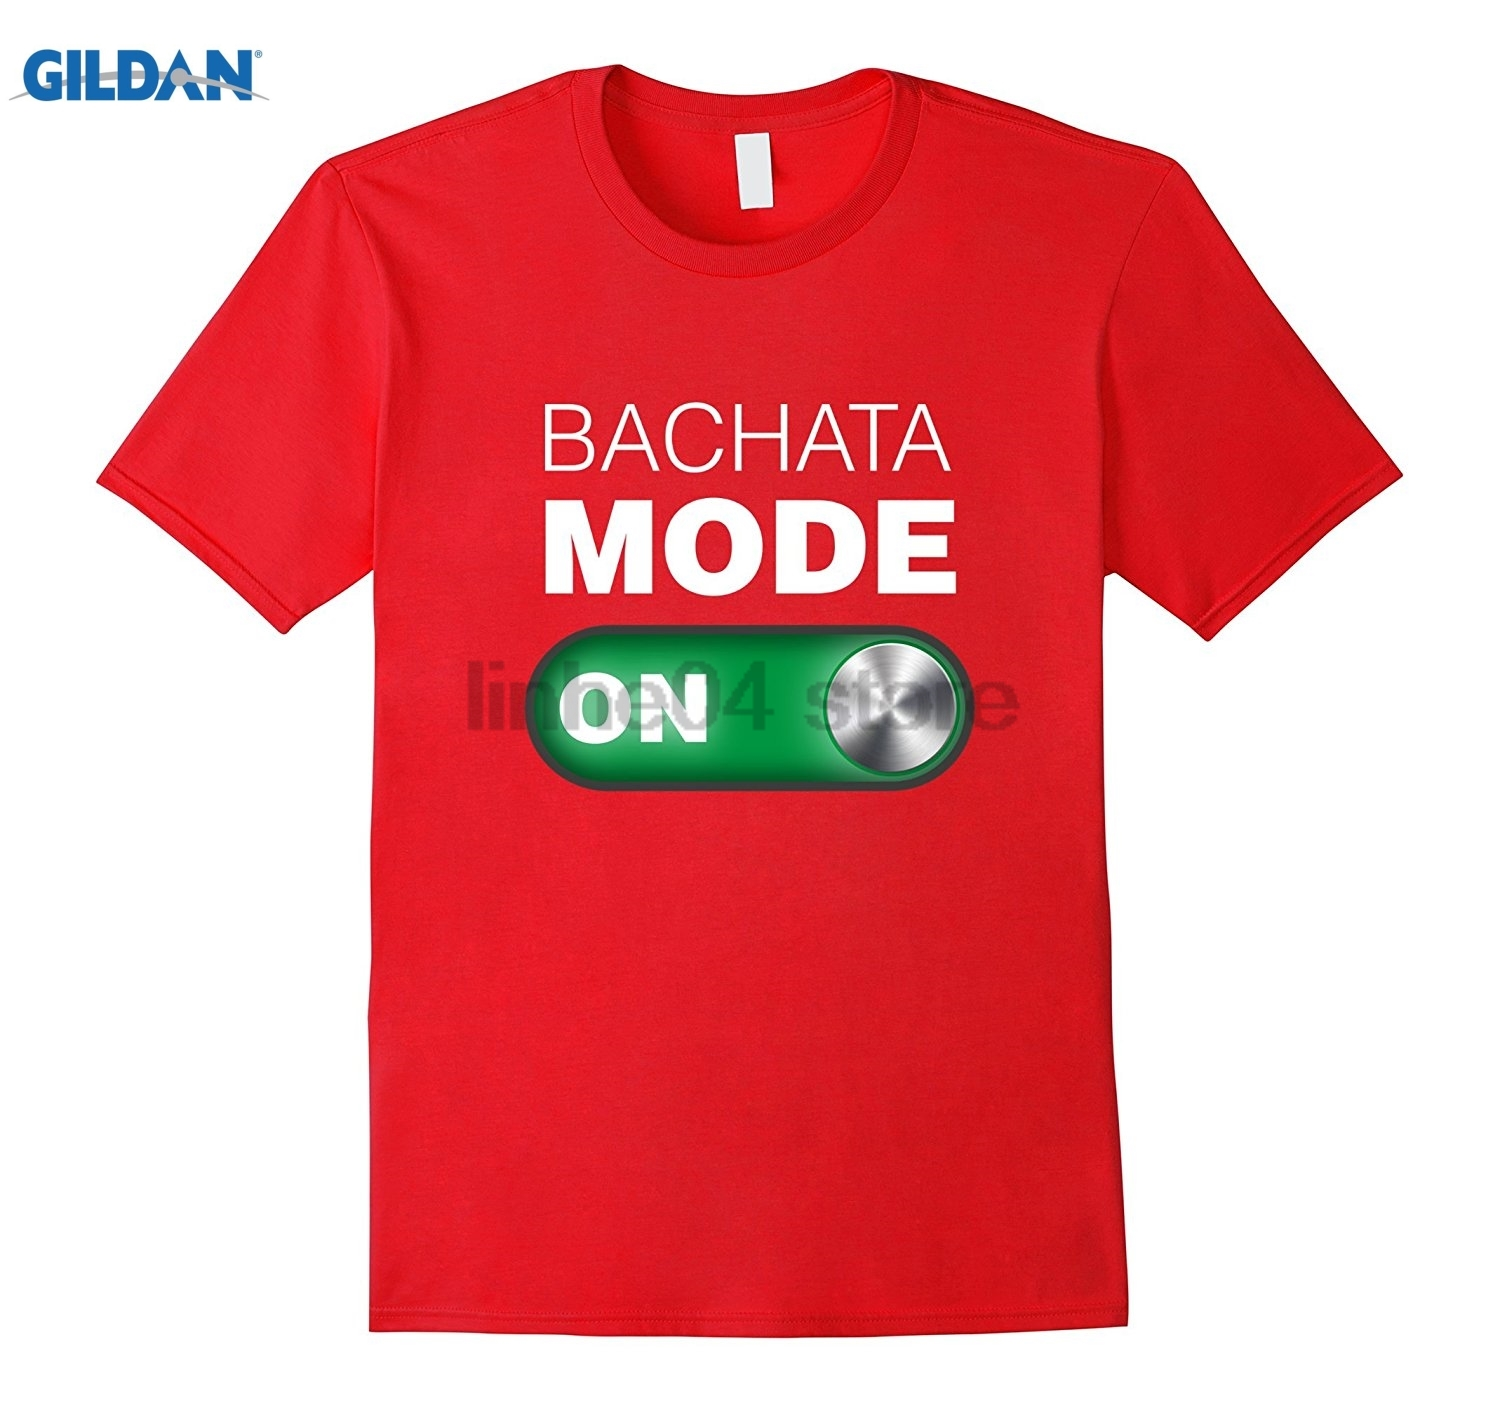 GILDAN Bachata Mode On Tee Shirt. Expressive Dance Shirt. dress T-shirt ...